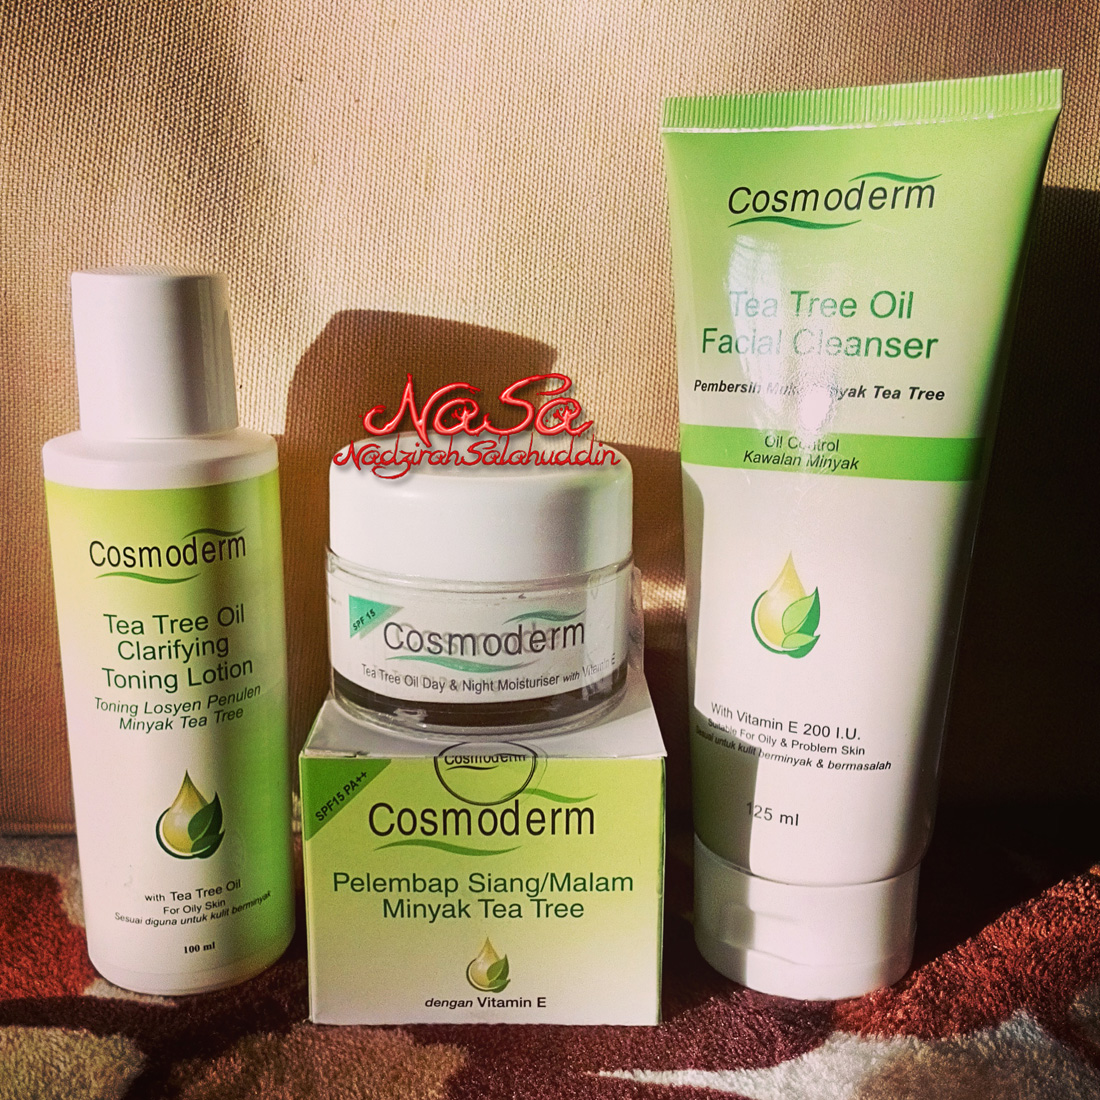 cosmoderm tea tree oil review